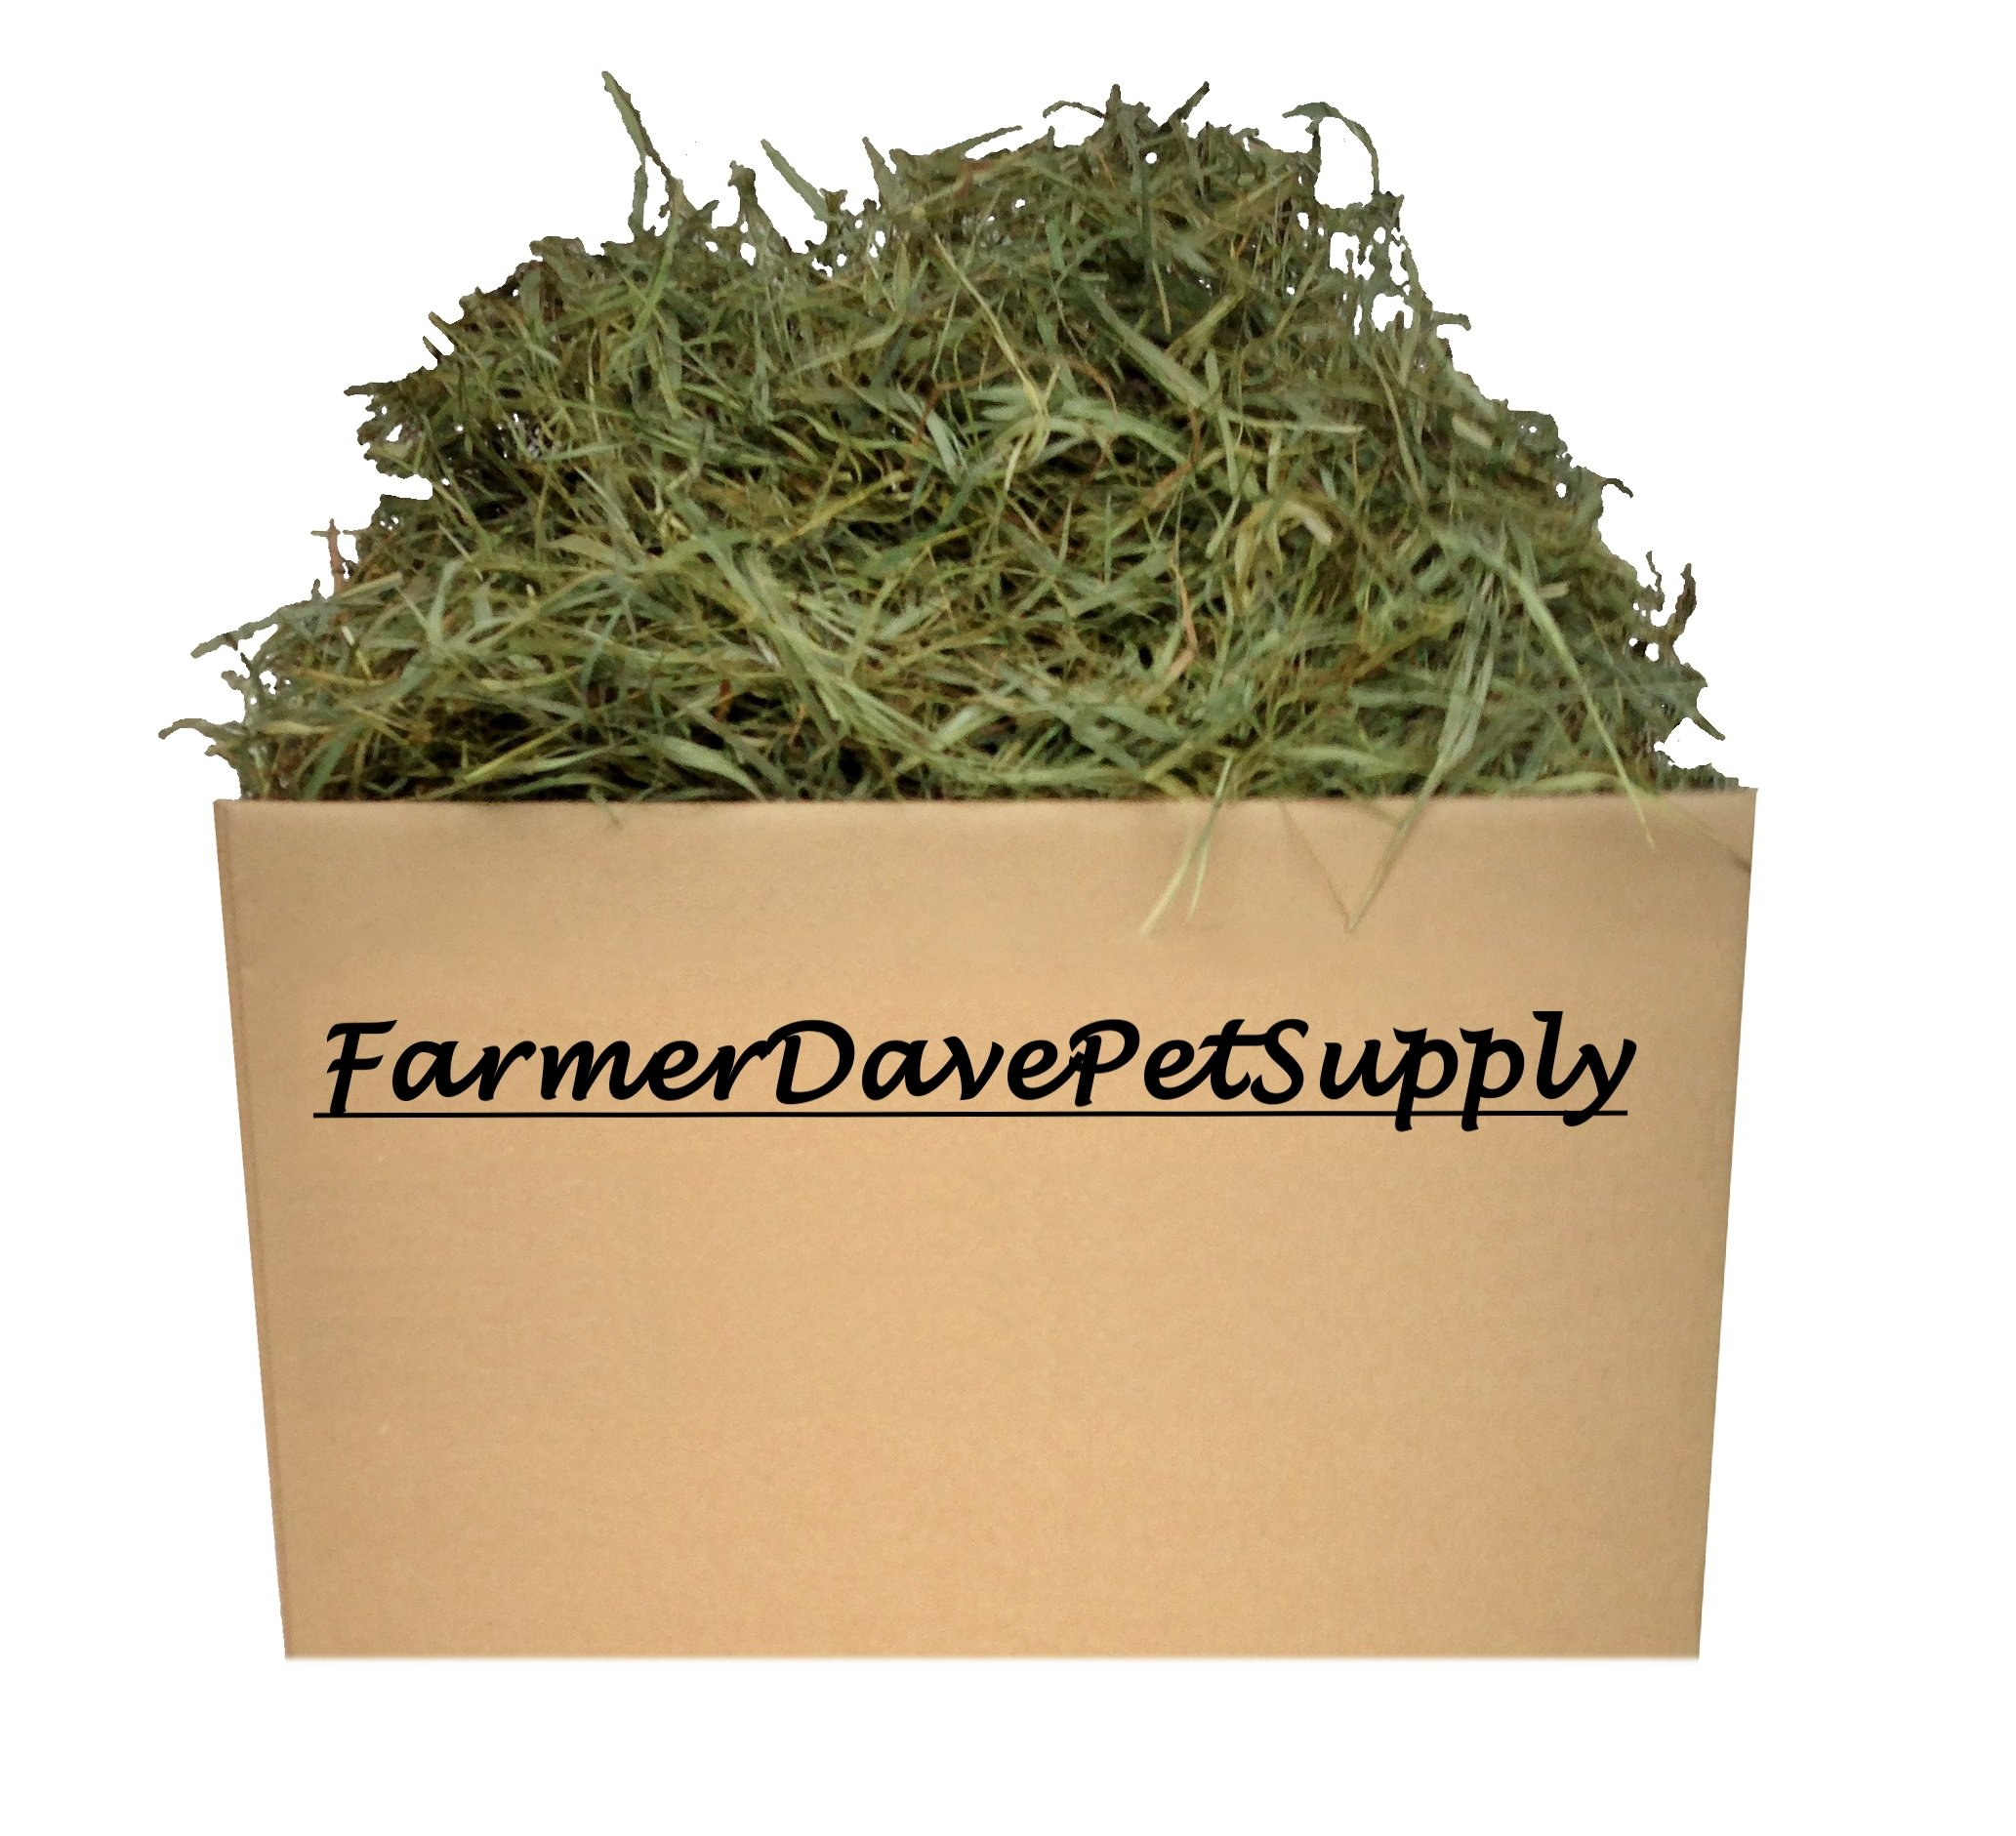 FarmerDavePetSupply 10 Lb Second Cut Timothy Hay, Bunny, Guinea Pig and Chinchilla Hay